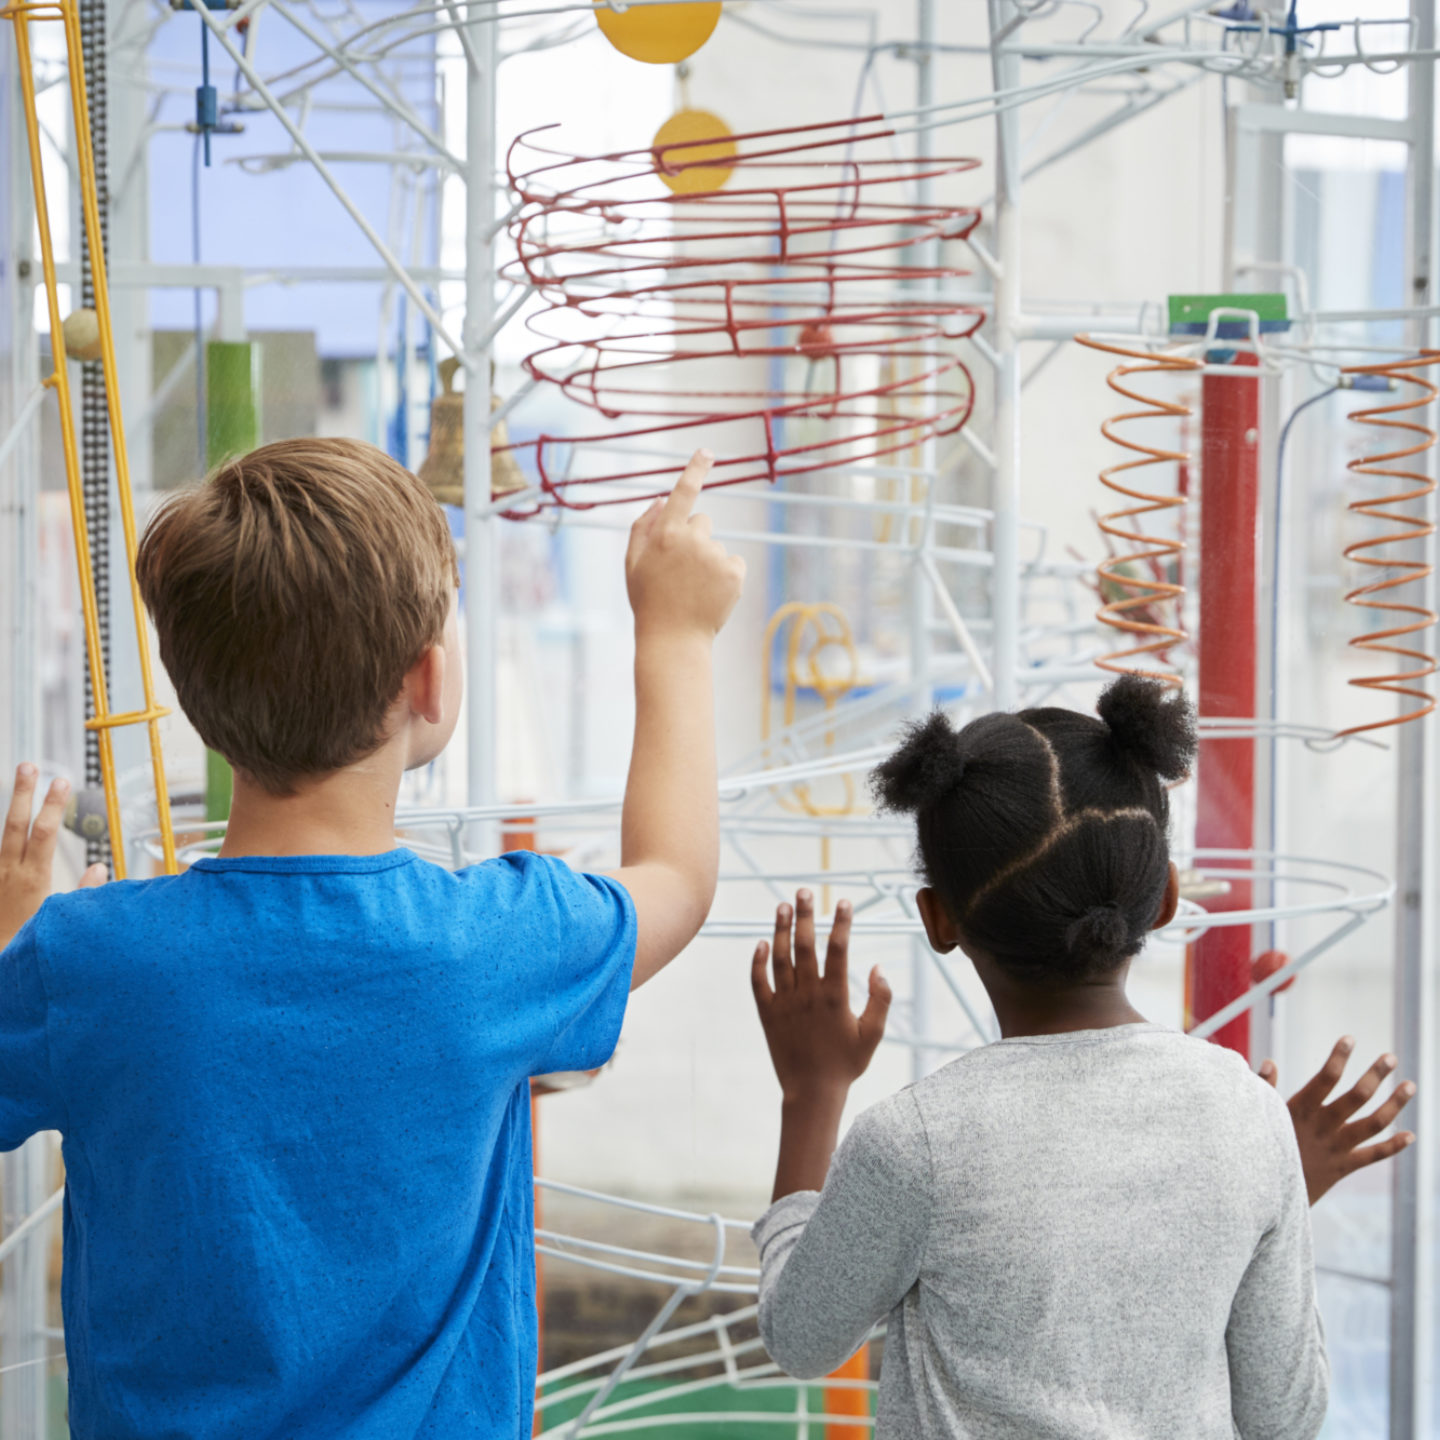 Kids at Science Center